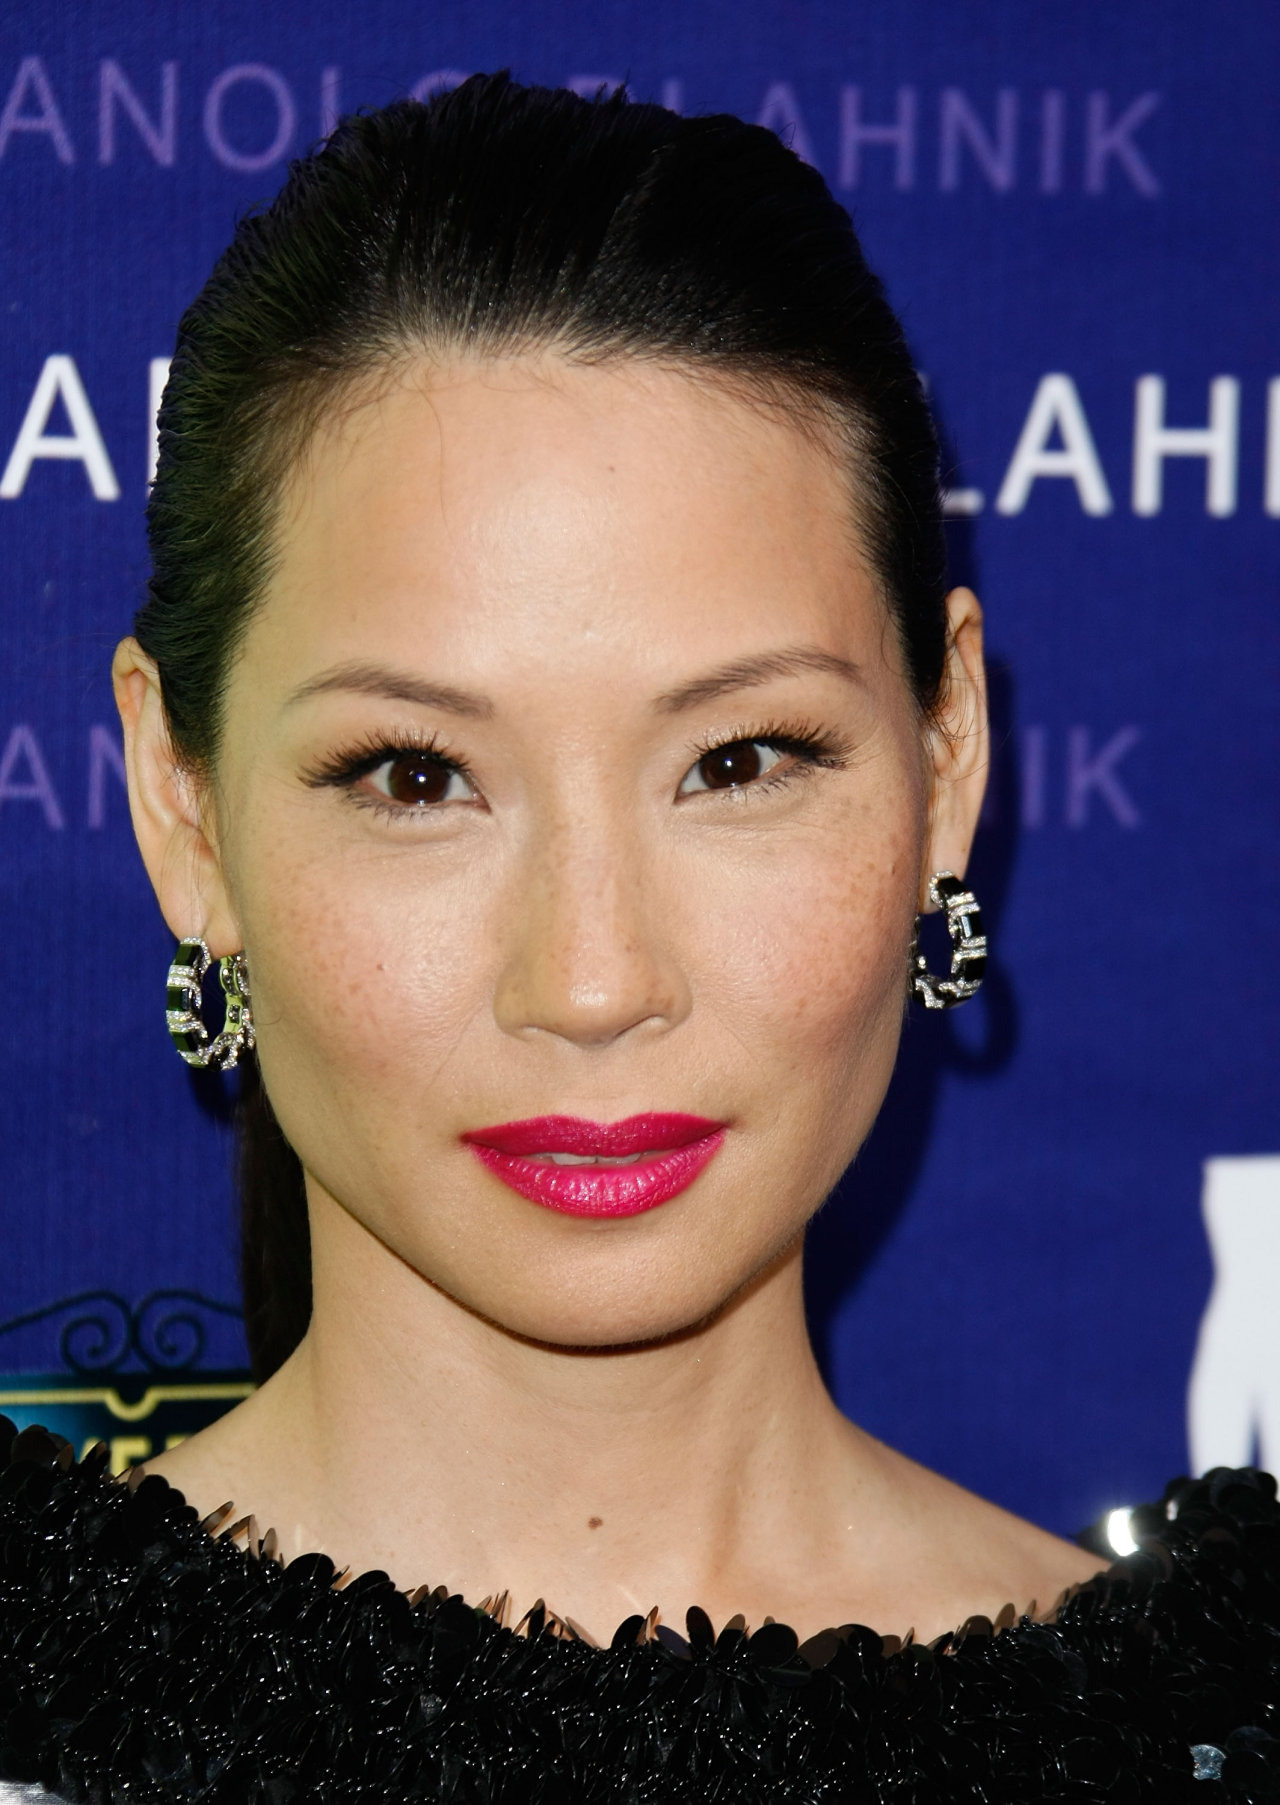 lucy liu We are living in the most advanced era where the game developer made different types of games people play them in order to kill their leisure time.